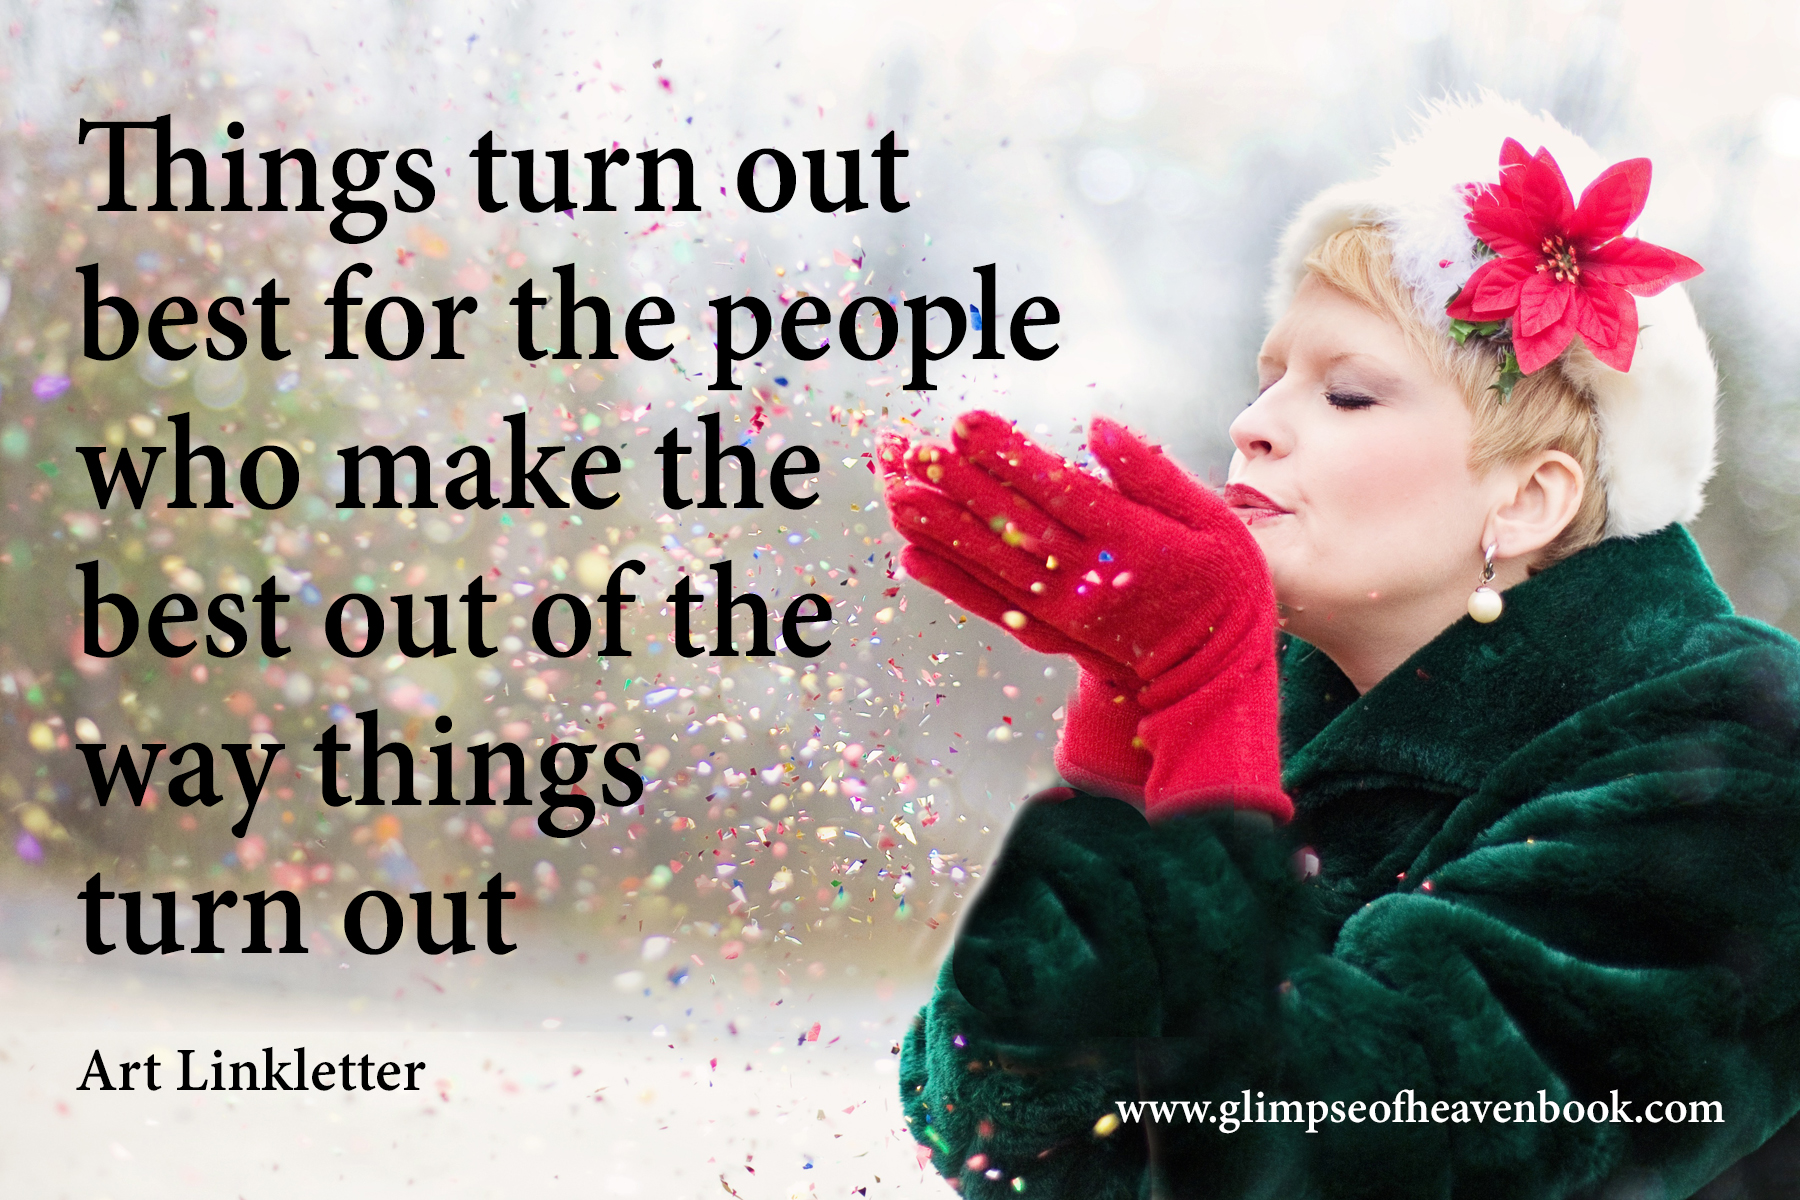 Things turn out  best for the people  who make the  best out of the way things  turn out.  Art Linkletter